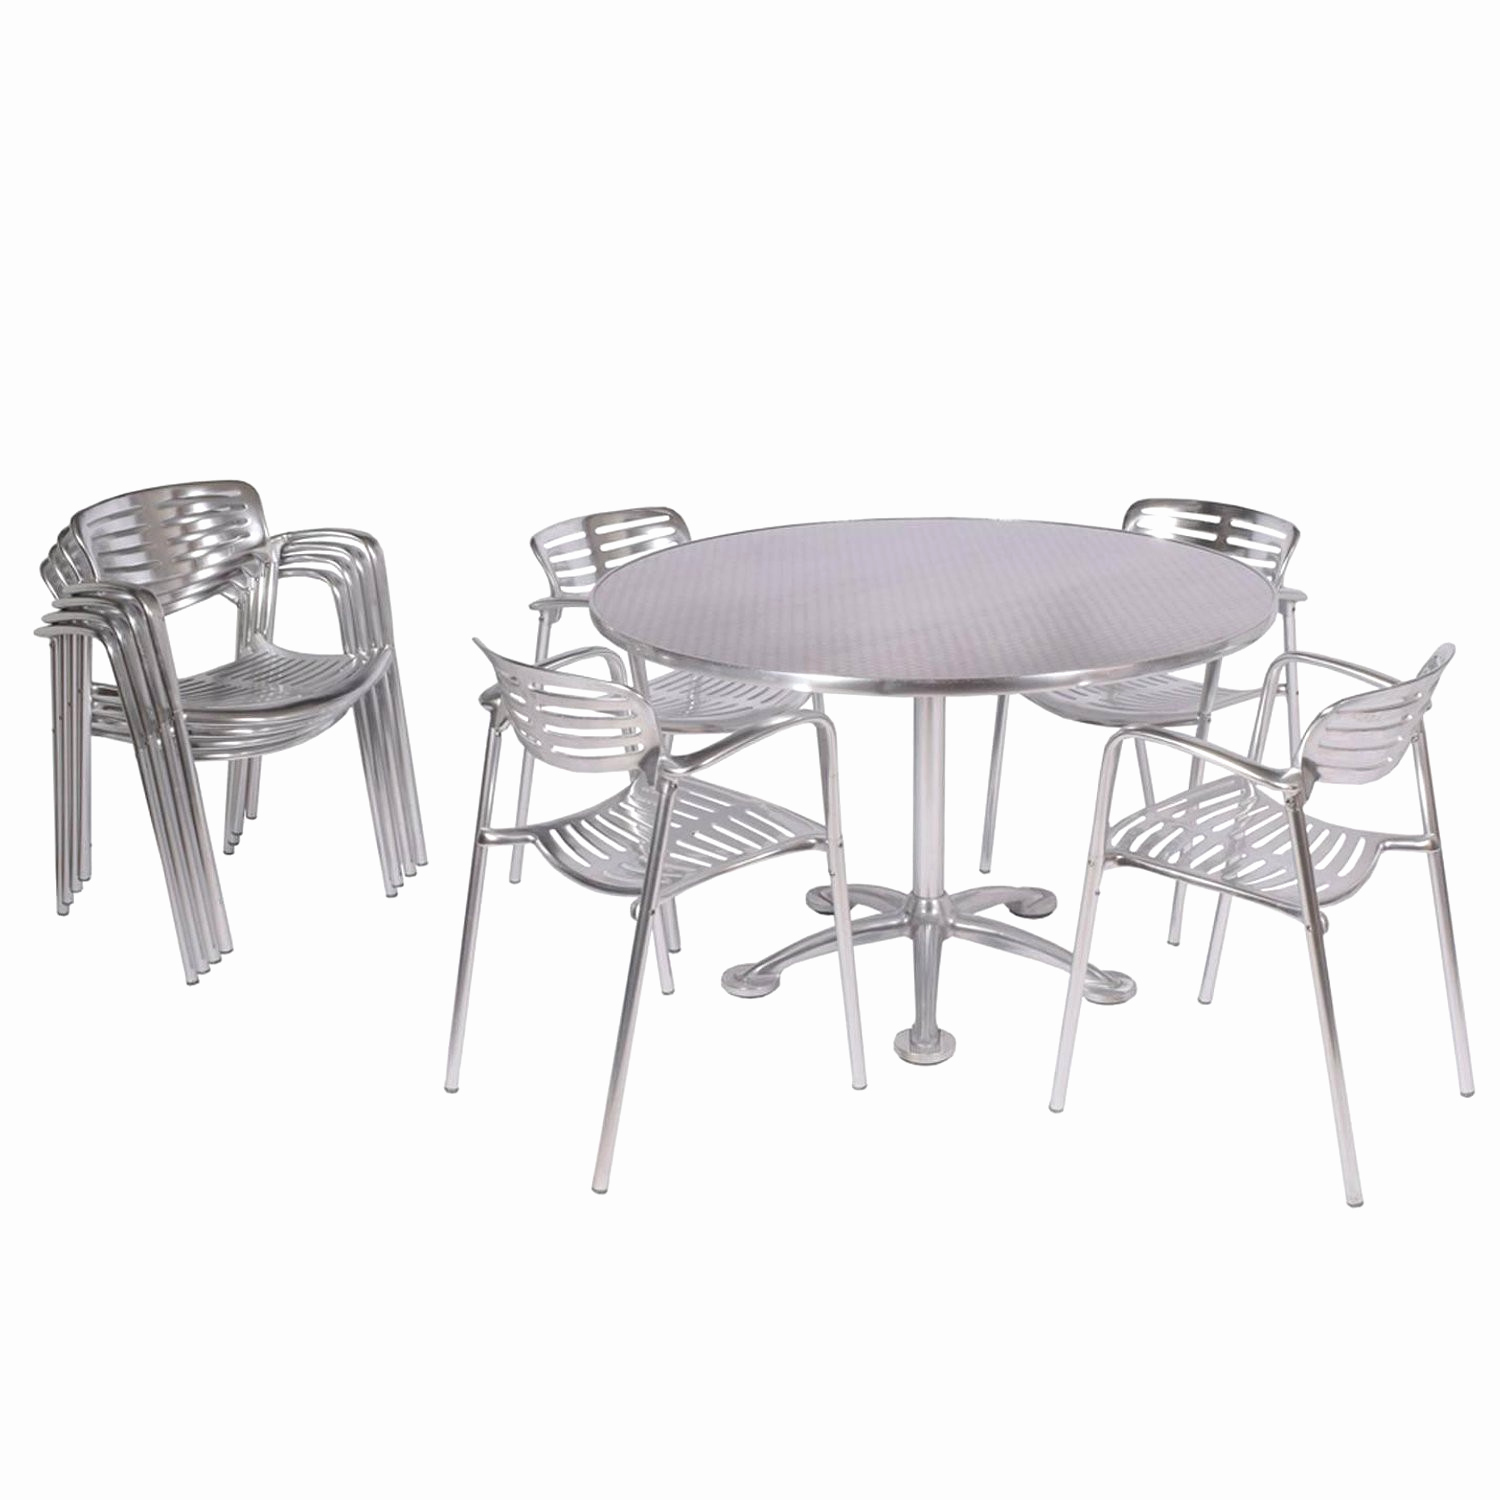 carrefour table pliante meilleur de table blanche pliante genial table et chaise pliante chaise pliante of carrefour table pliante